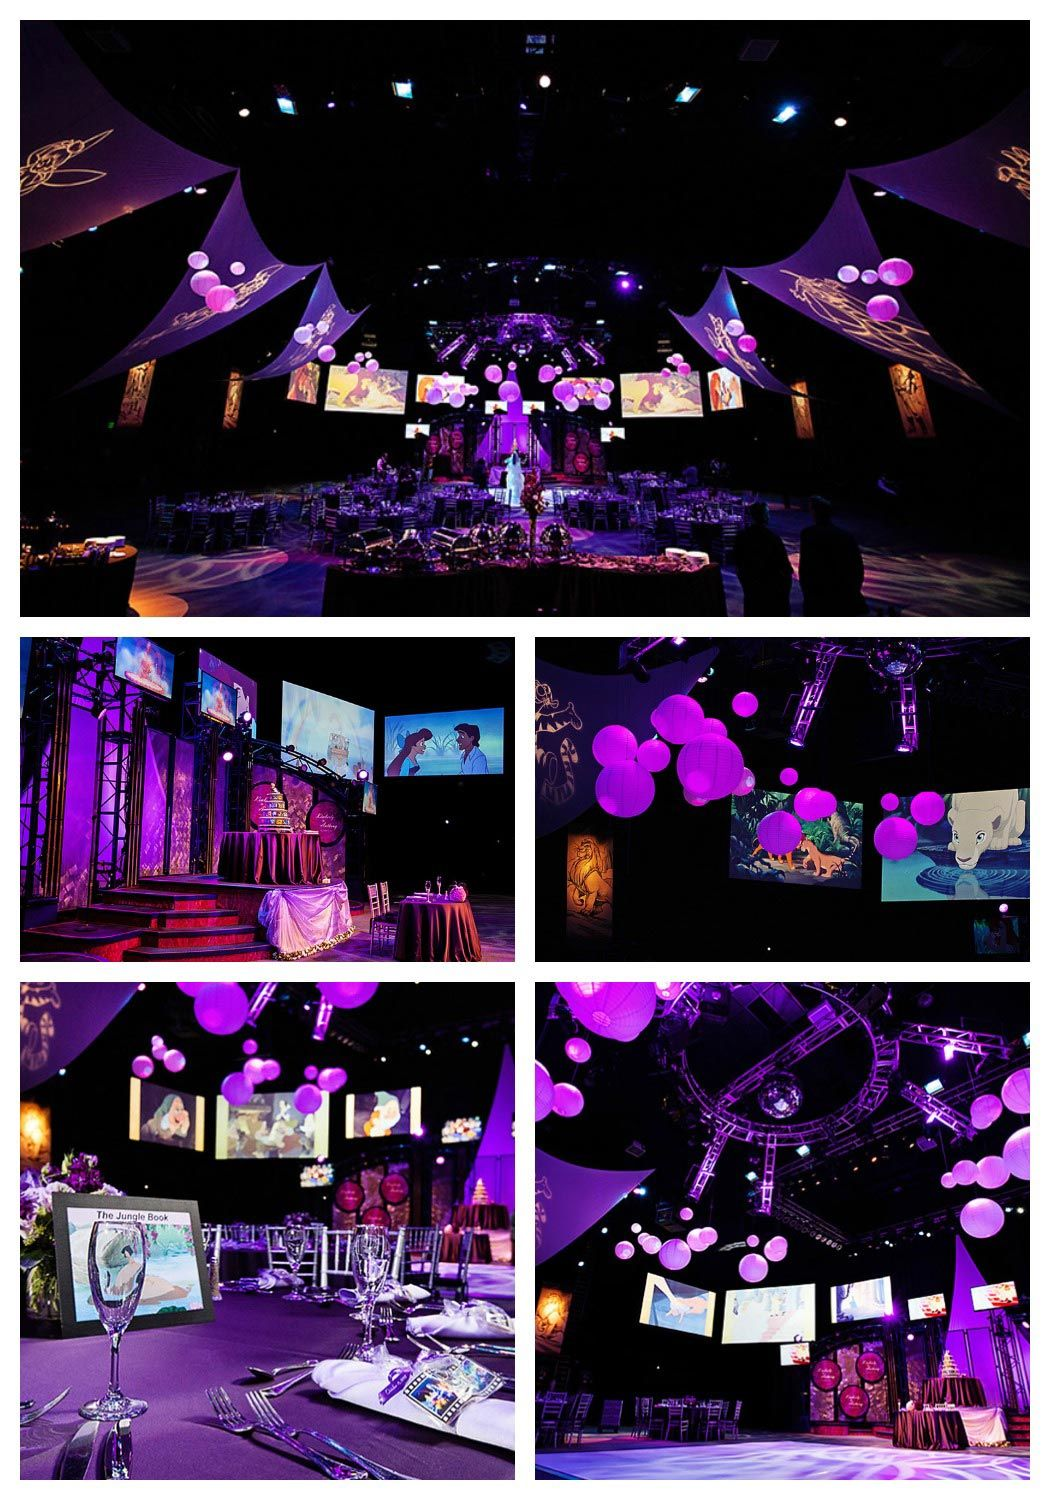 8 Disney Wedding Venues You Didn't Know Existed (With ...